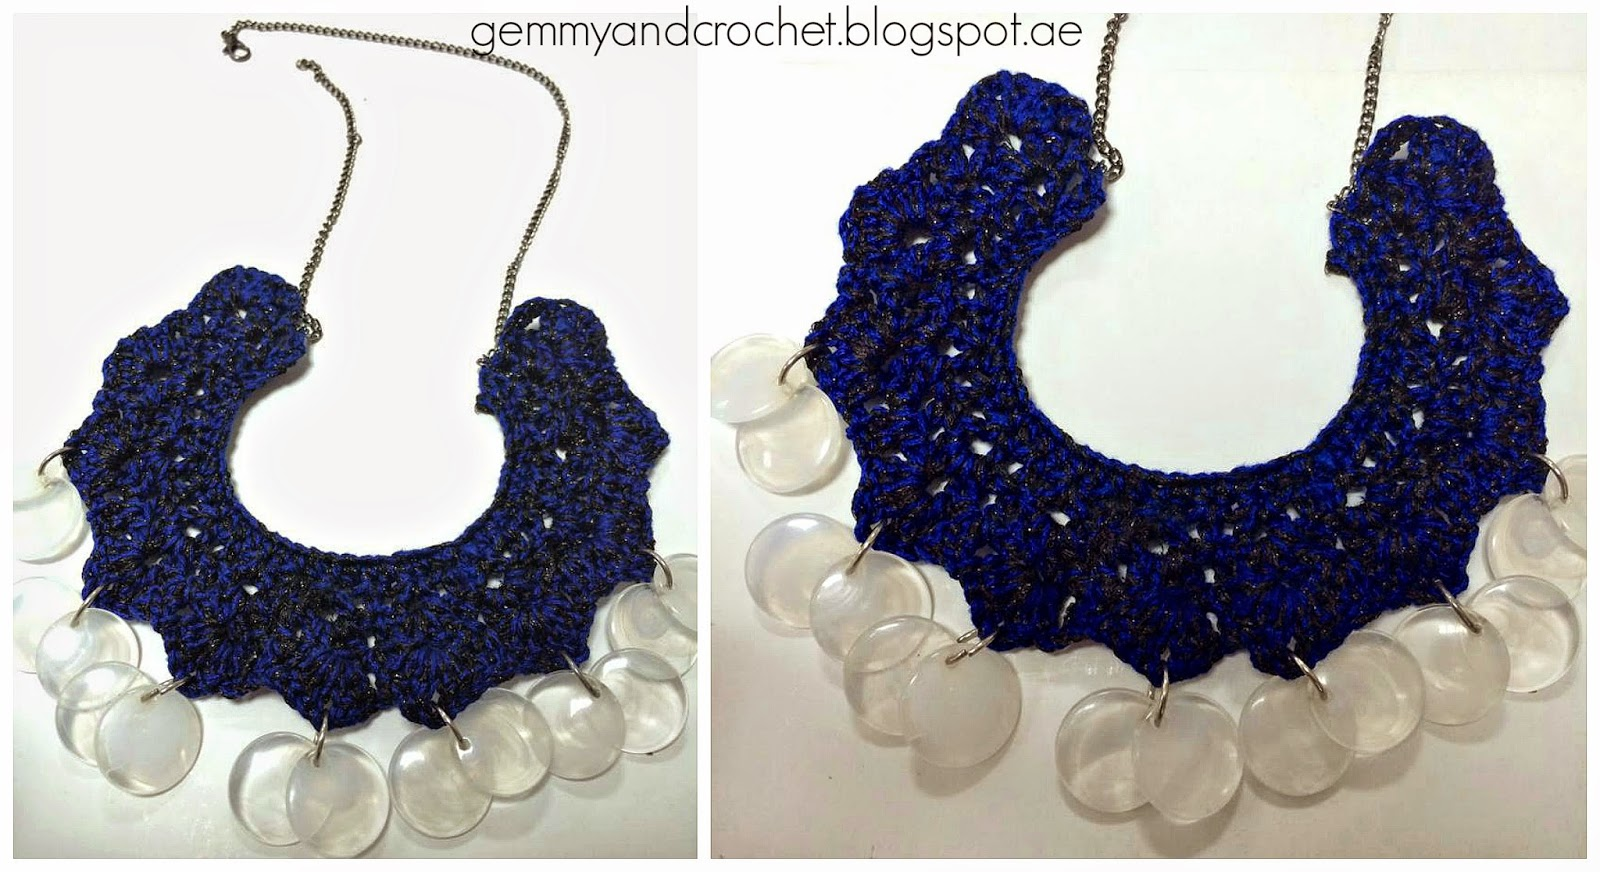 Crocheting Necklaces With Beads : ALL ABOUT CROCHET: Beaded Crochet Necklace